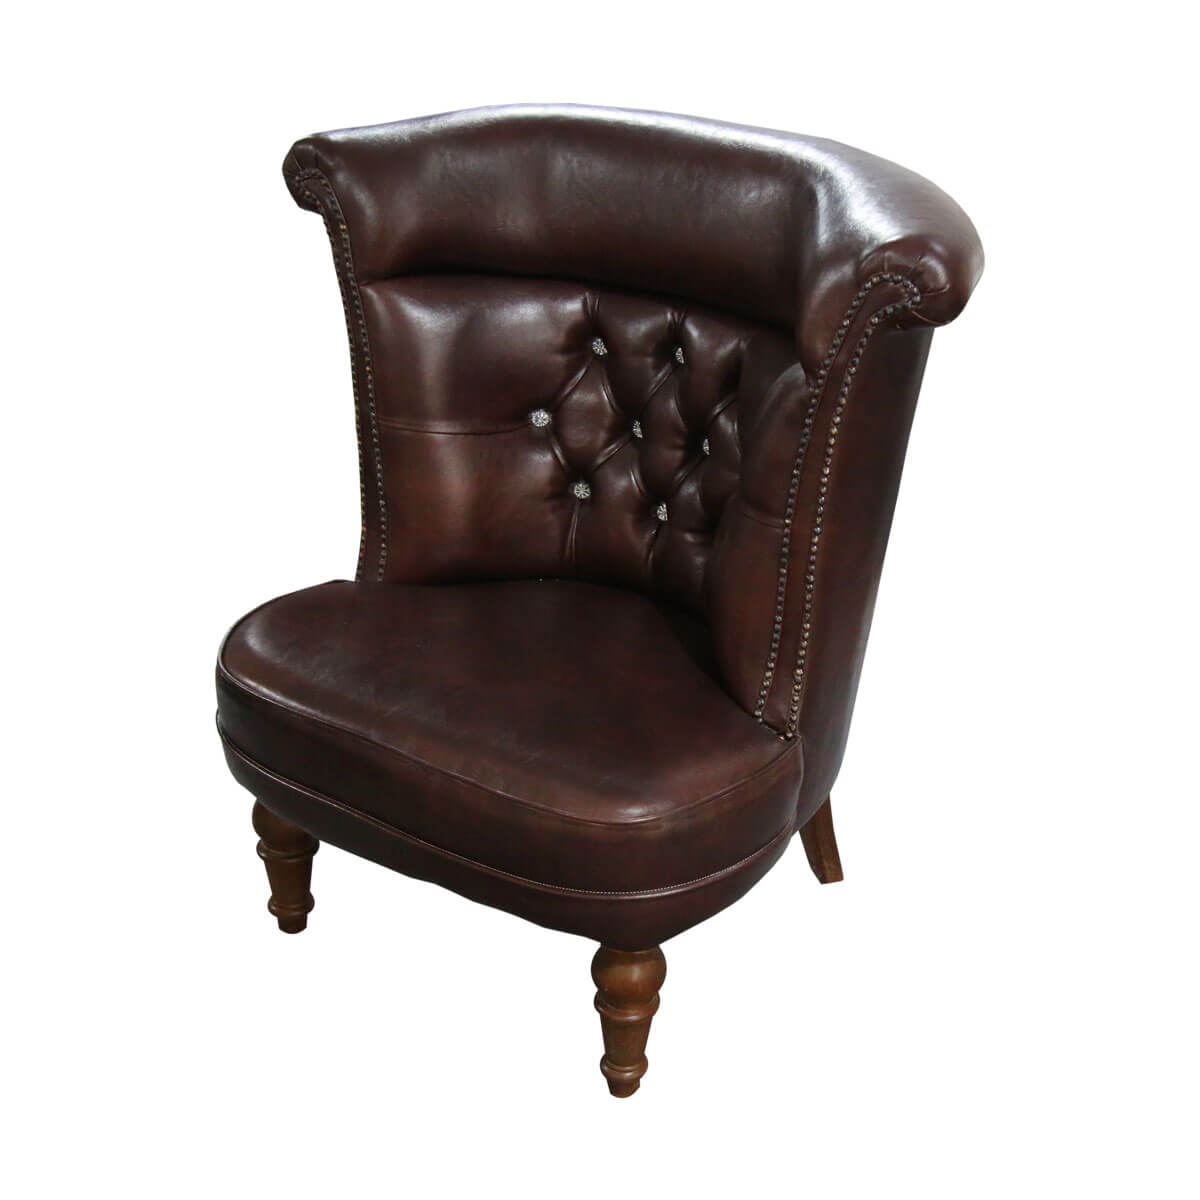 Pittsburgh Studious Mahogany Wood Leather Tufted Accent Barrel Chair